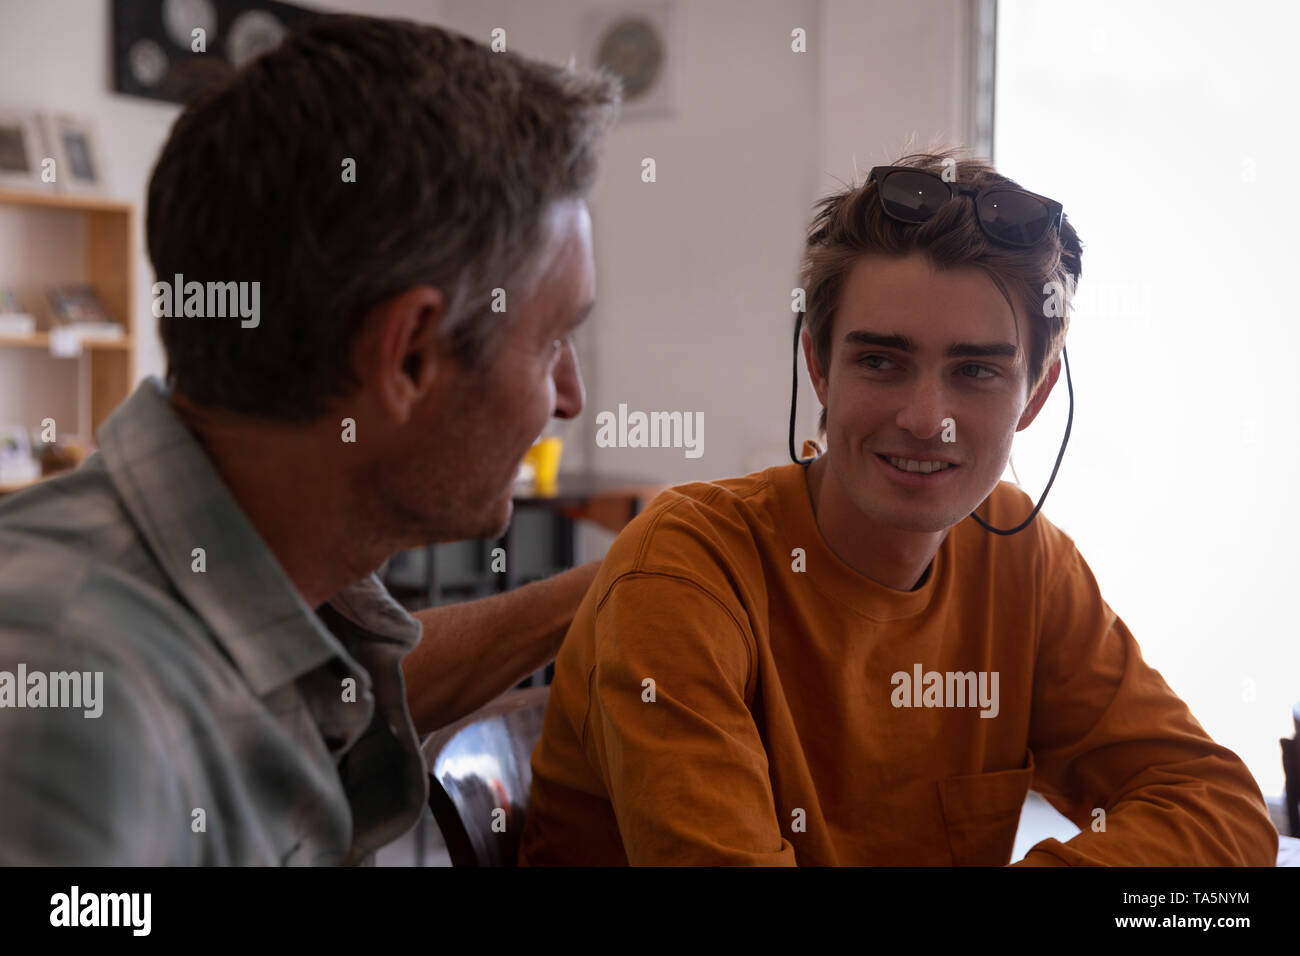 Father and son interact with each other - Stock Image